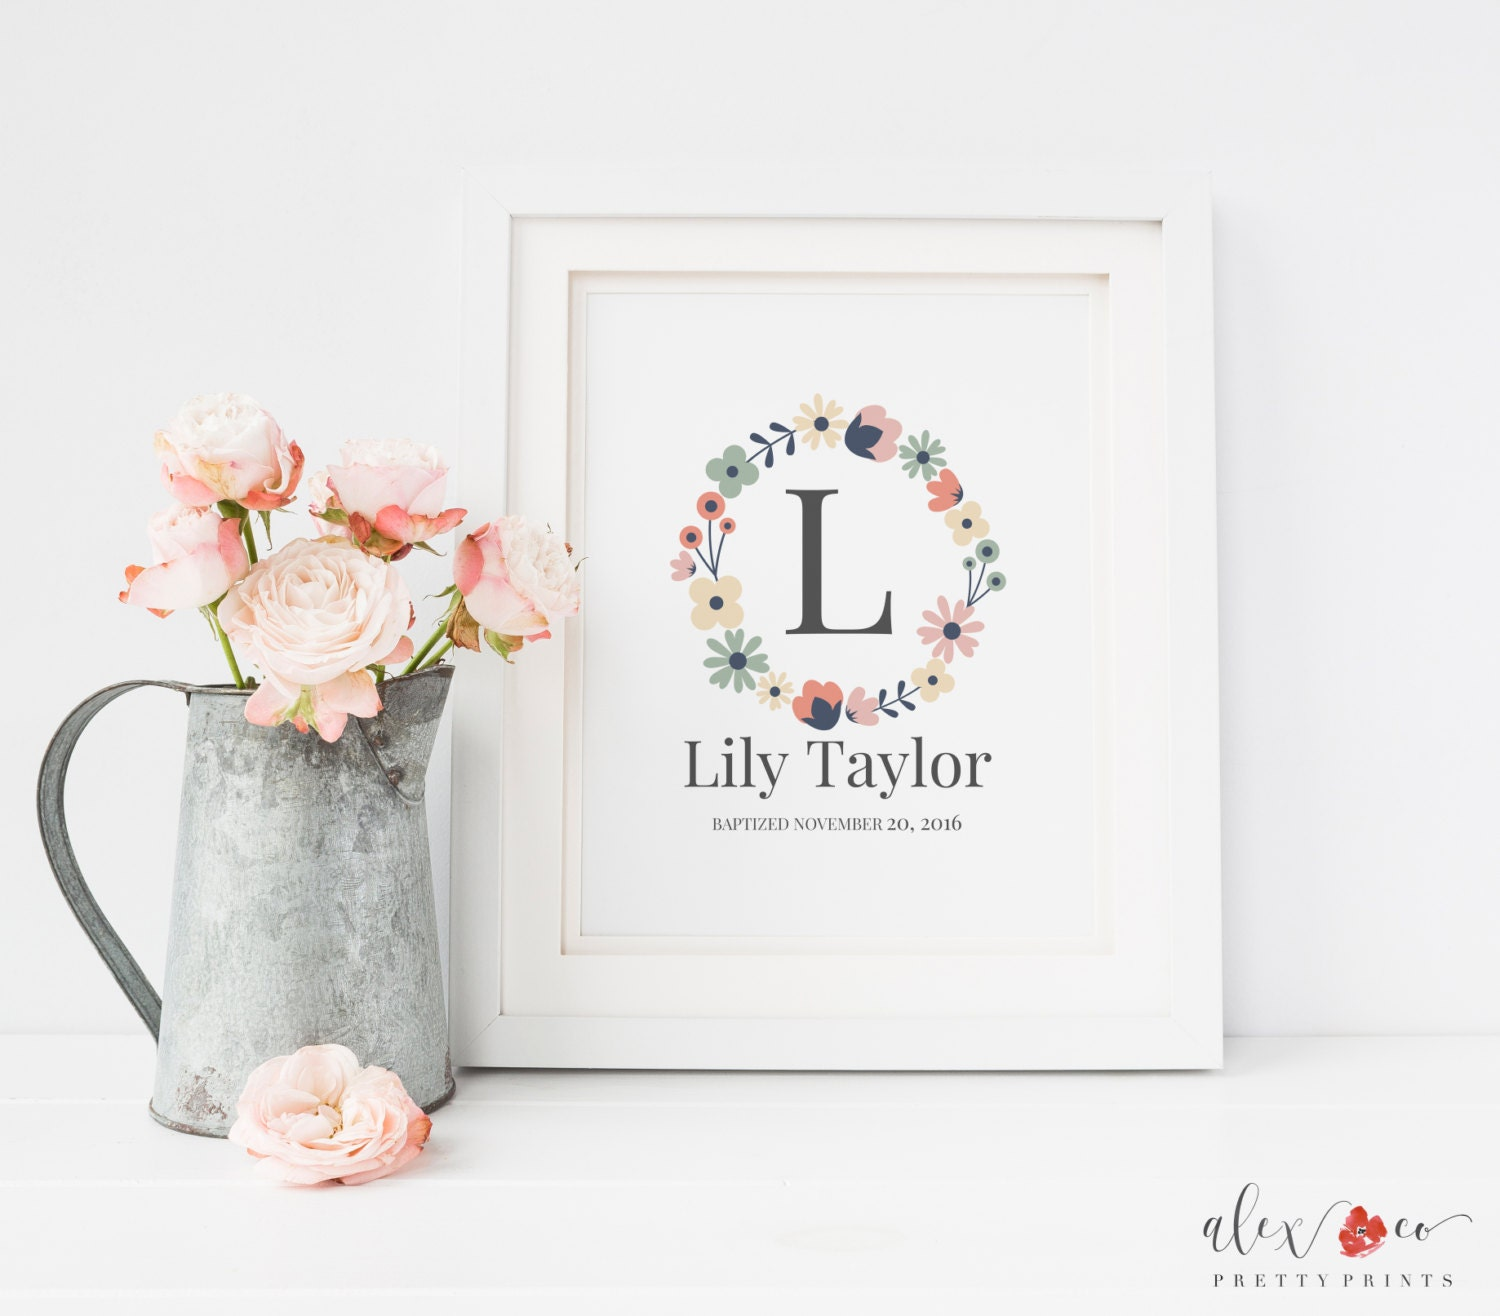 Just Had A Baby Gift Ideas : Personalized baby girl gift nursery printables wall